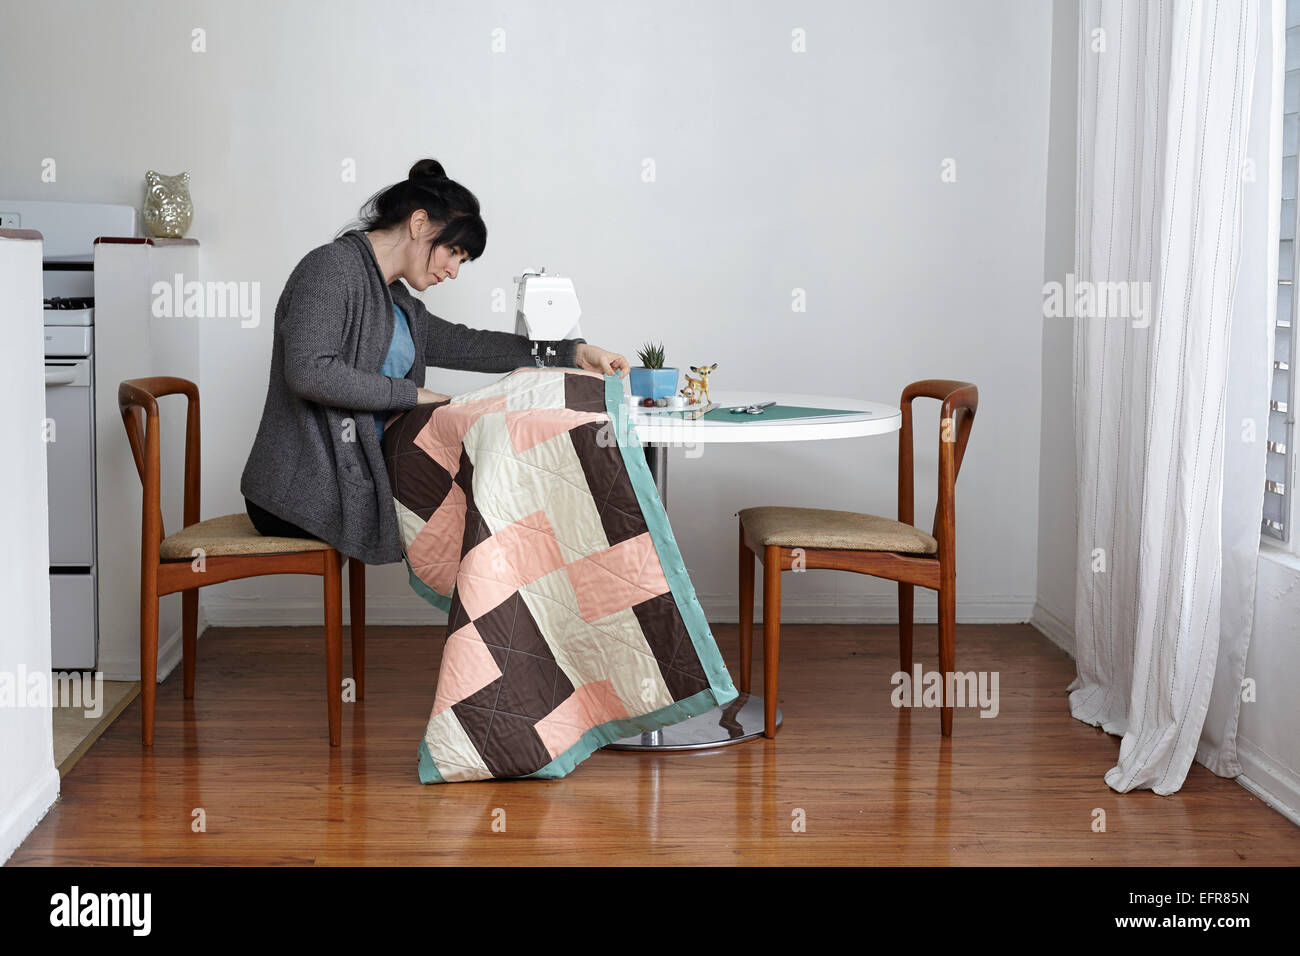 Living Quilt Stock Photos Amp Living Quilt Stock Images Alamy